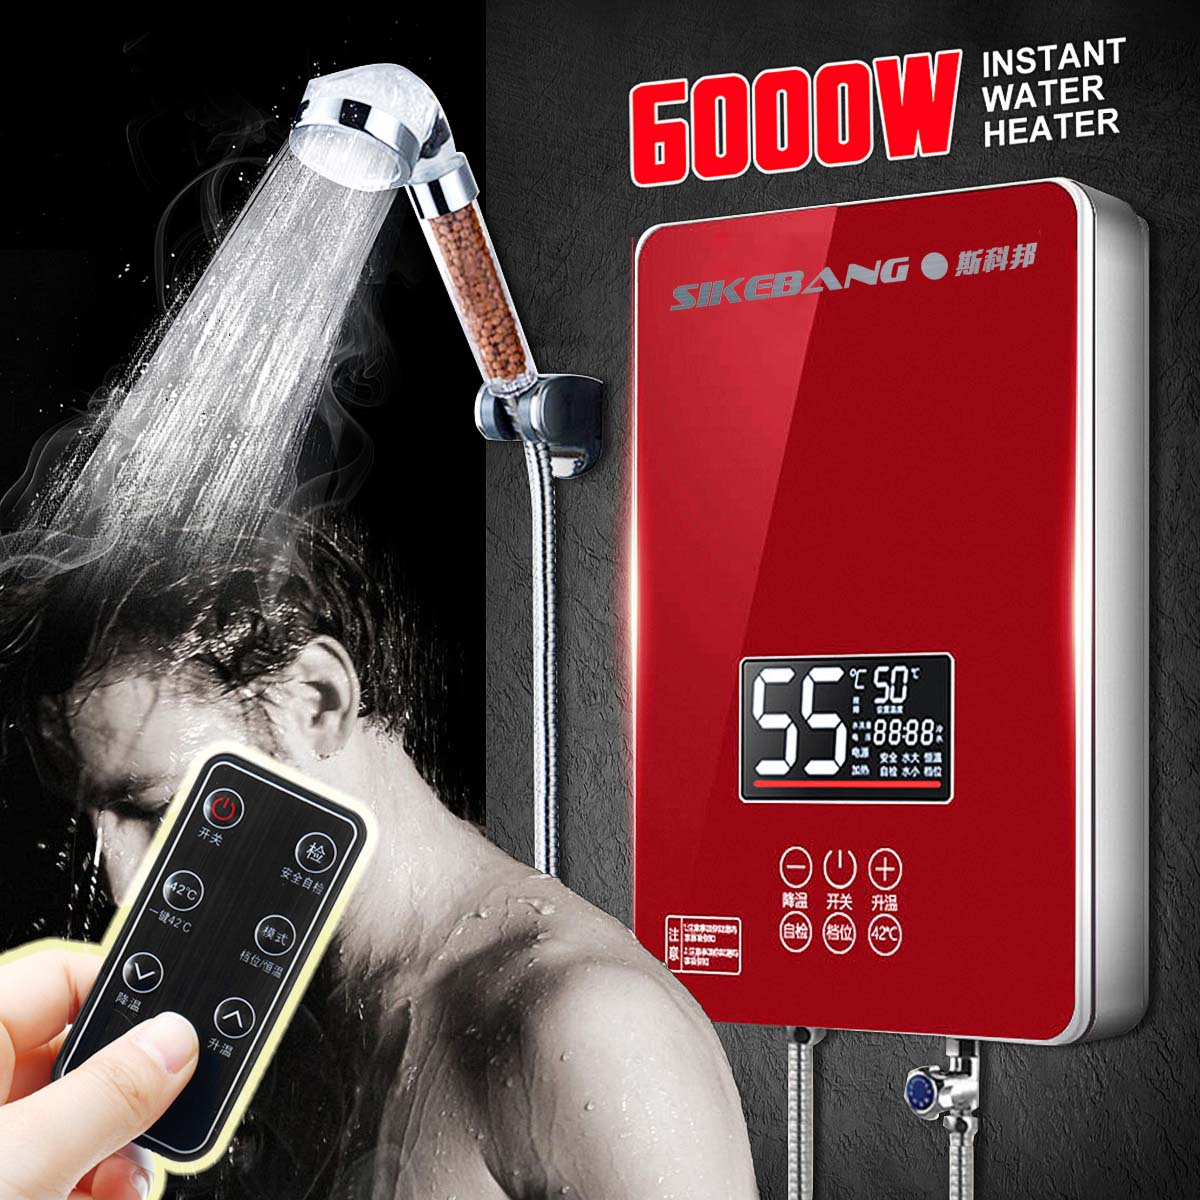 6000W Tankless Instant Electric Water Heater Hot Water Heater Boiler Bath Shower Nozzle Set Temperature Display Heating Shower